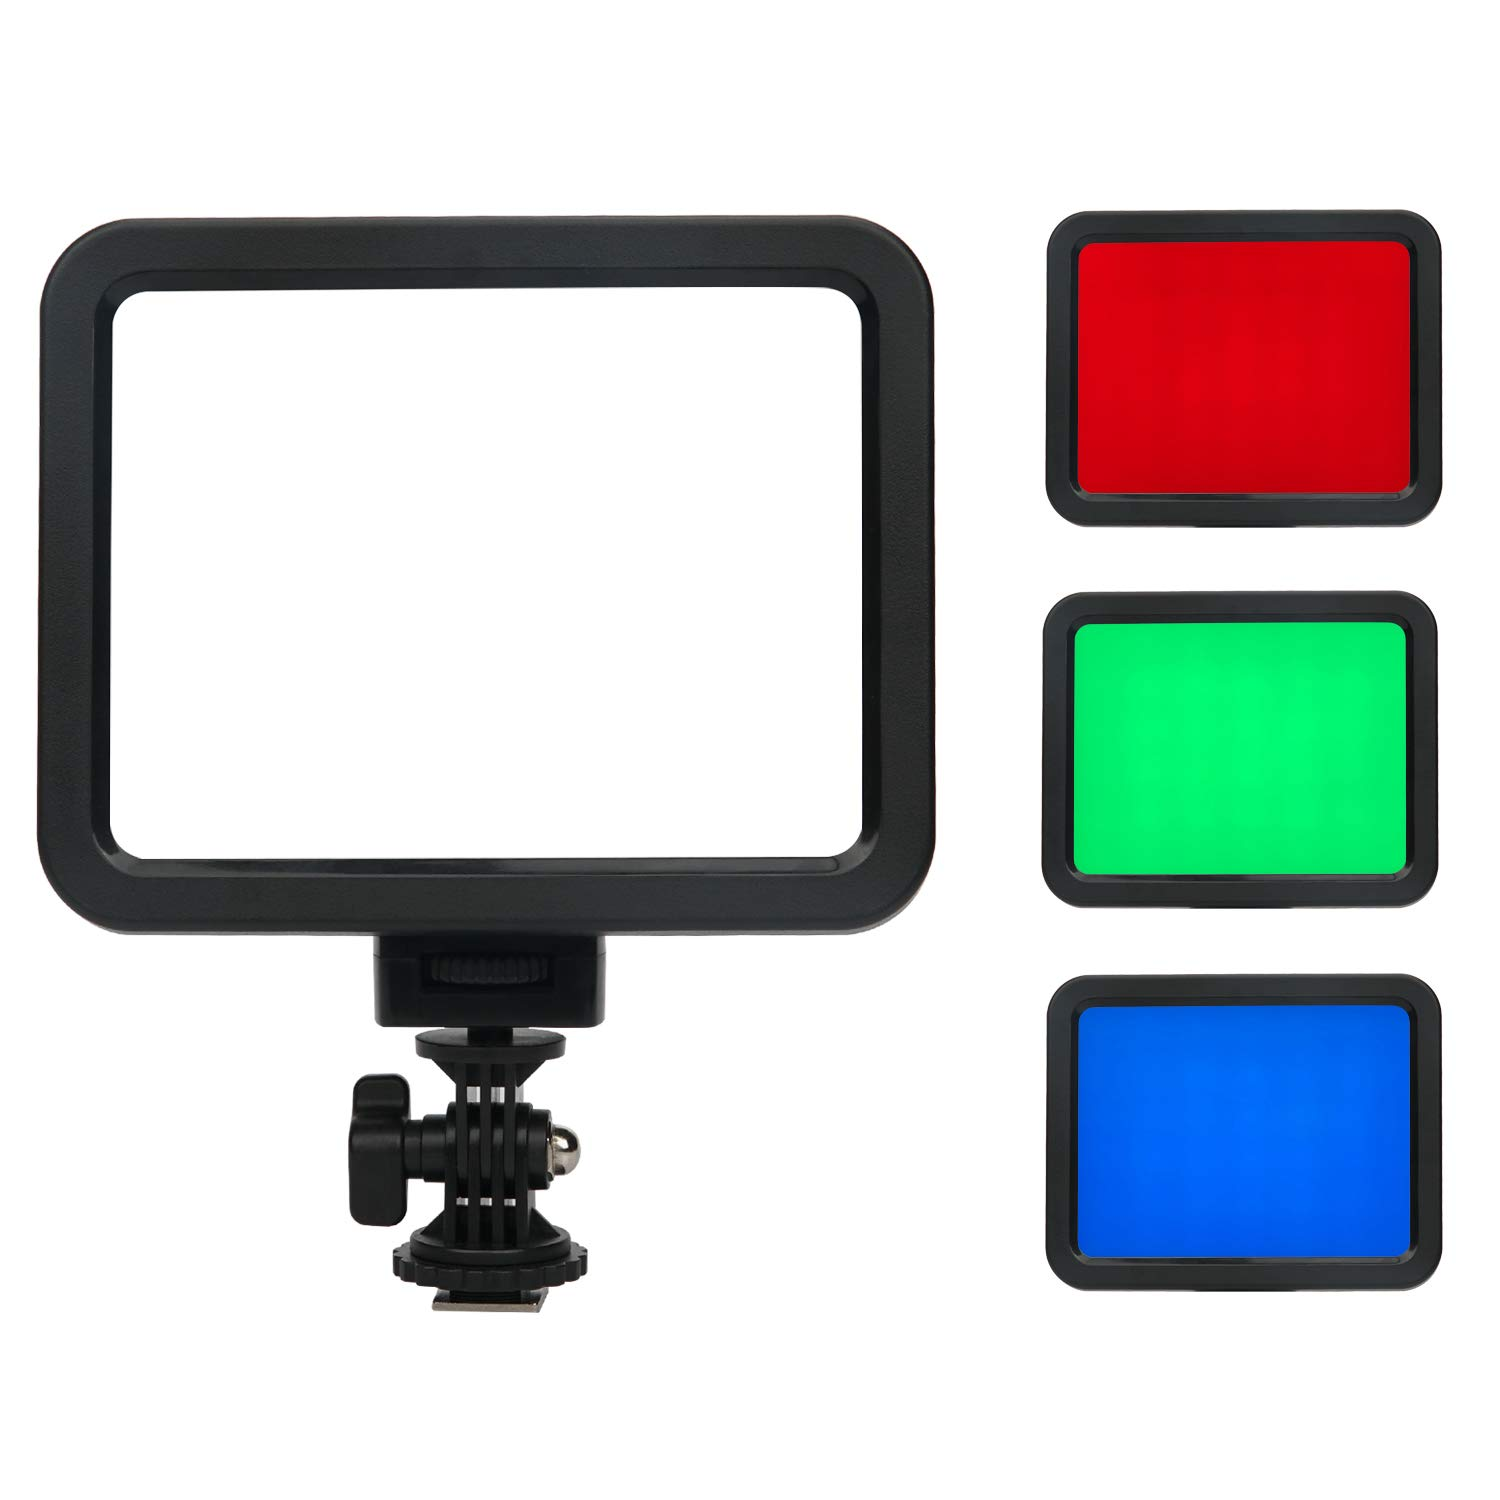 ANDYCINE RGB Video Light 3200-5700K Dimmable Photo Studio Lighting 360 Colors Video Light Brightness Adjustable (AL-360)